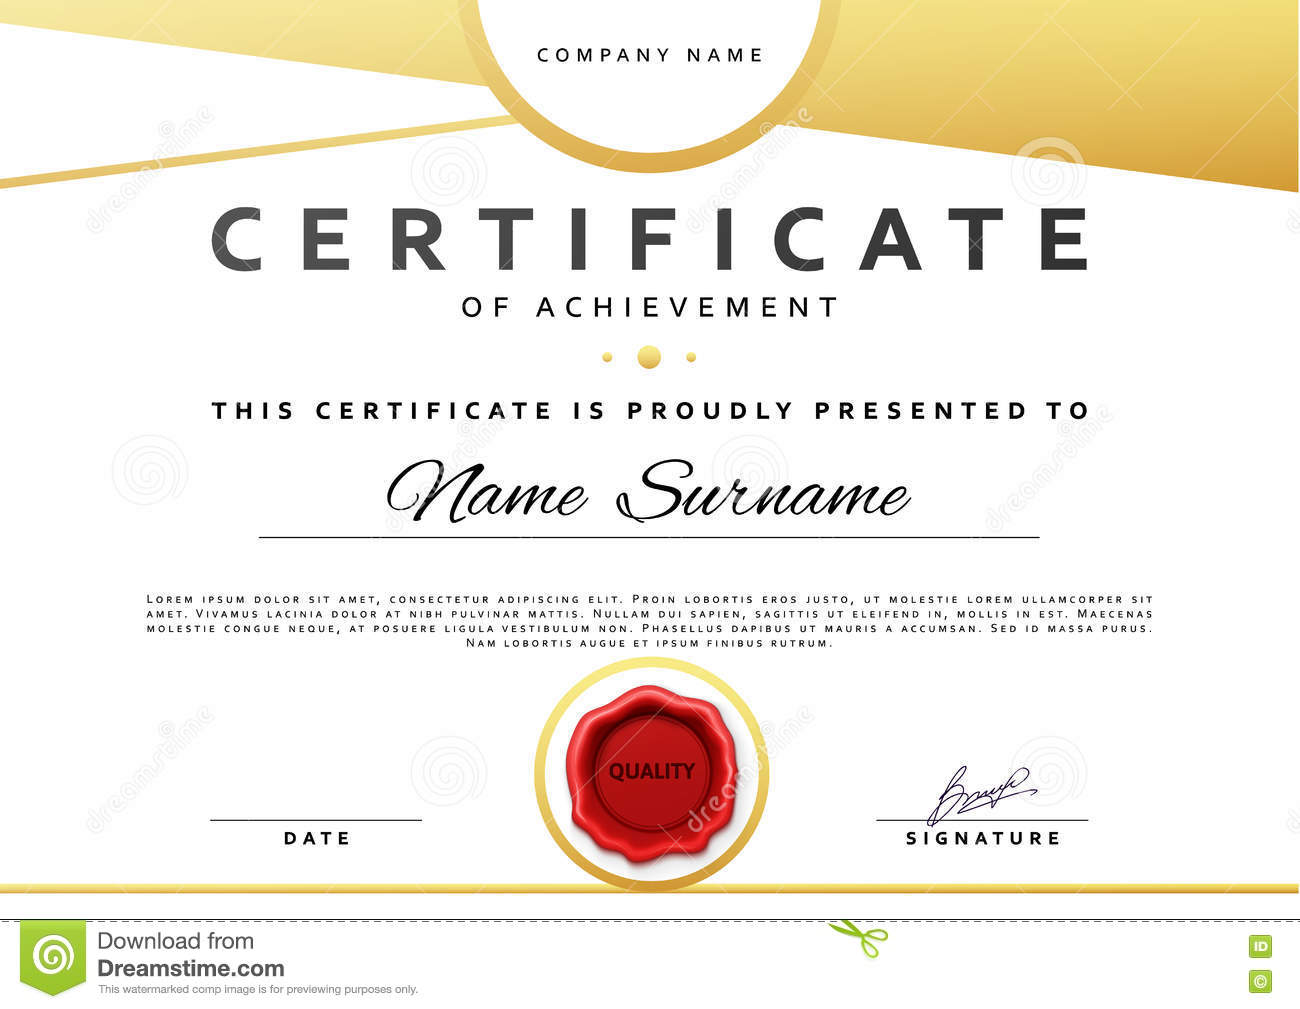 ready design certificate for promotion with red sealing wax stock